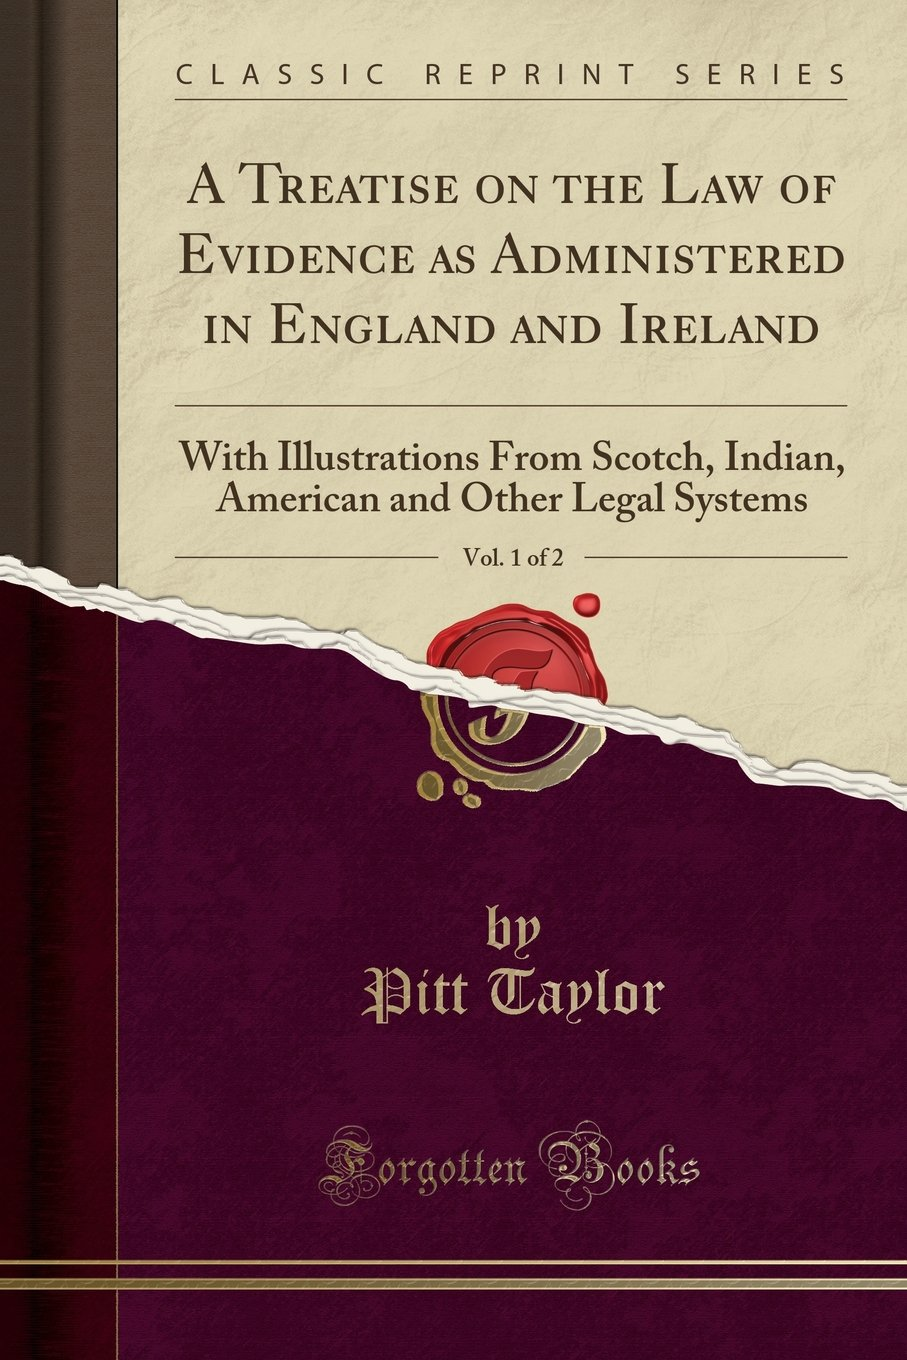 A Treatise on the Law of Evidence as Administered in England and Ireland, Vol. 1 of 2: With Illustrations From Scotch, Indian, American and Other Legal Systems (Classic Reprint) pdf epub